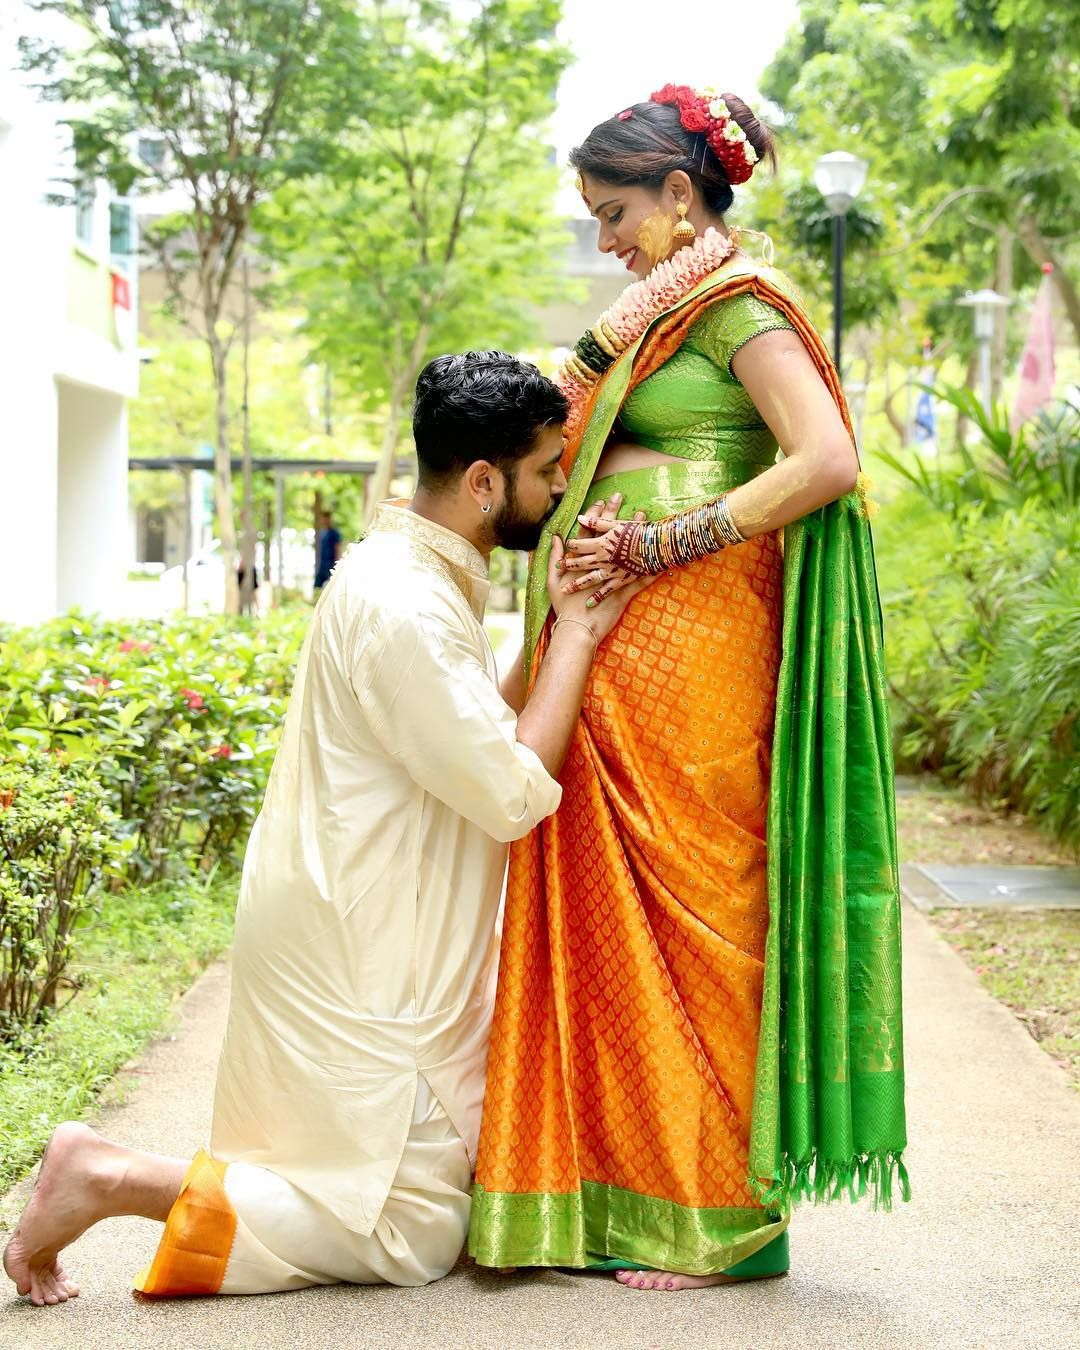 Valaikappu Outdoors Baby Shower Photography Poses